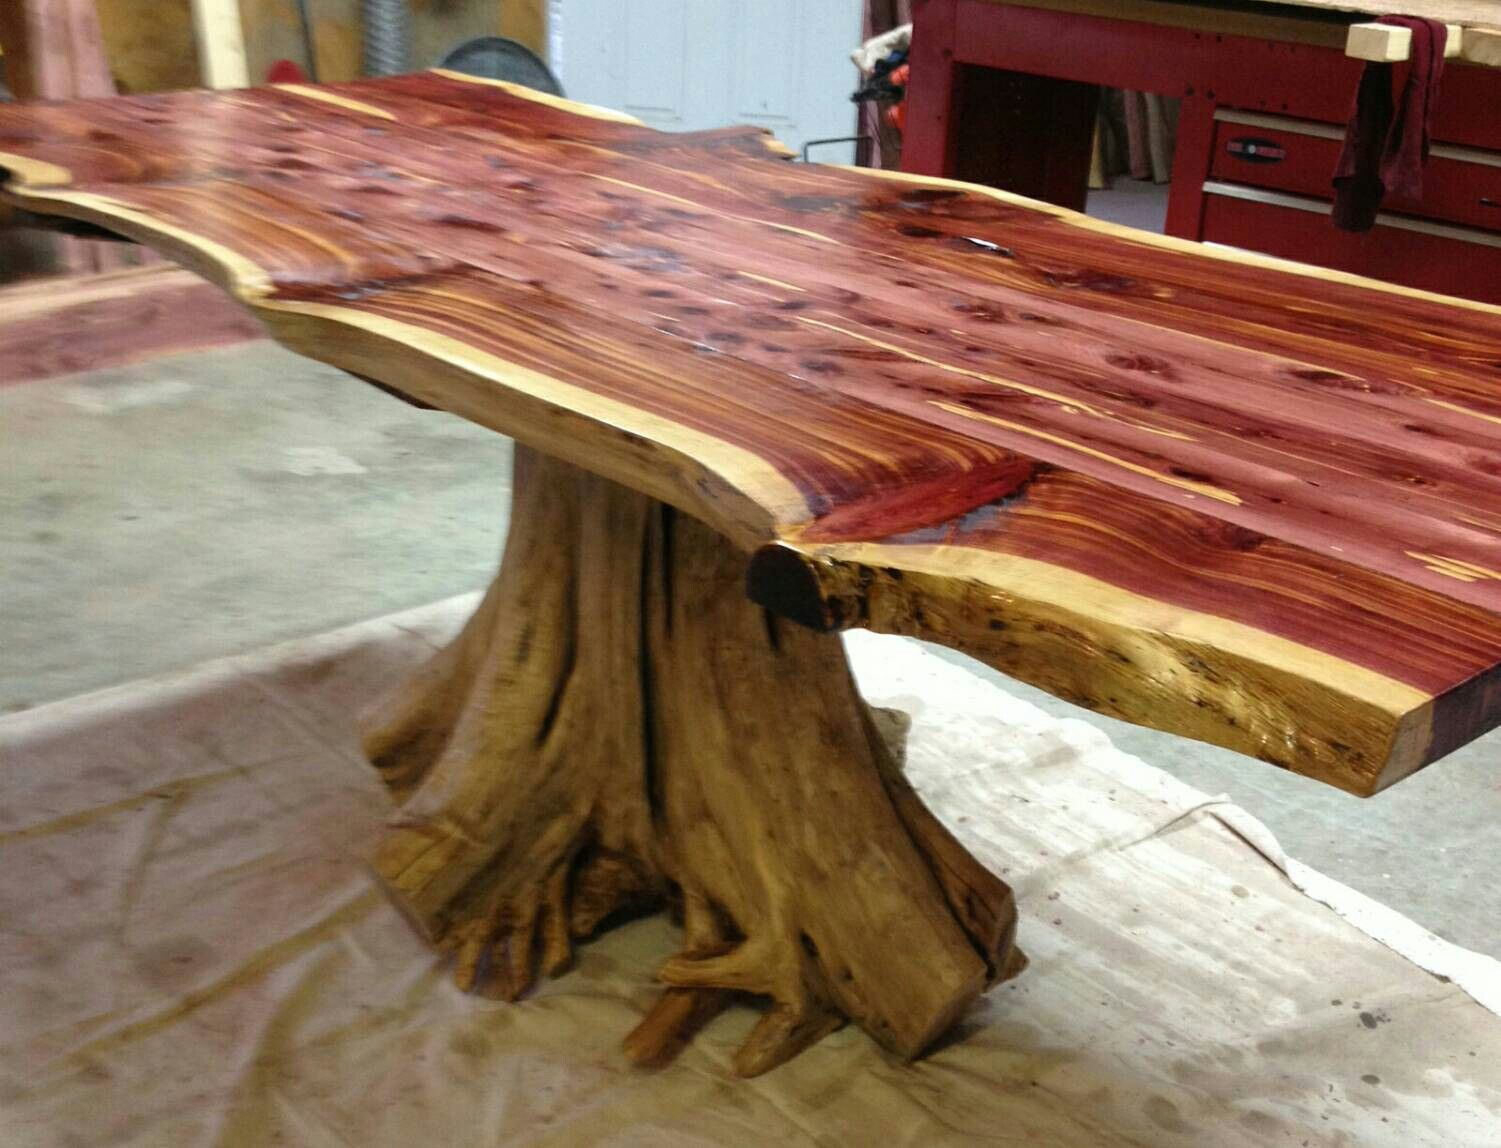 Admirable Live Edge Cedar Stump Dining Table Projects To Try Ideas Download Free Architecture Designs Scobabritishbridgeorg